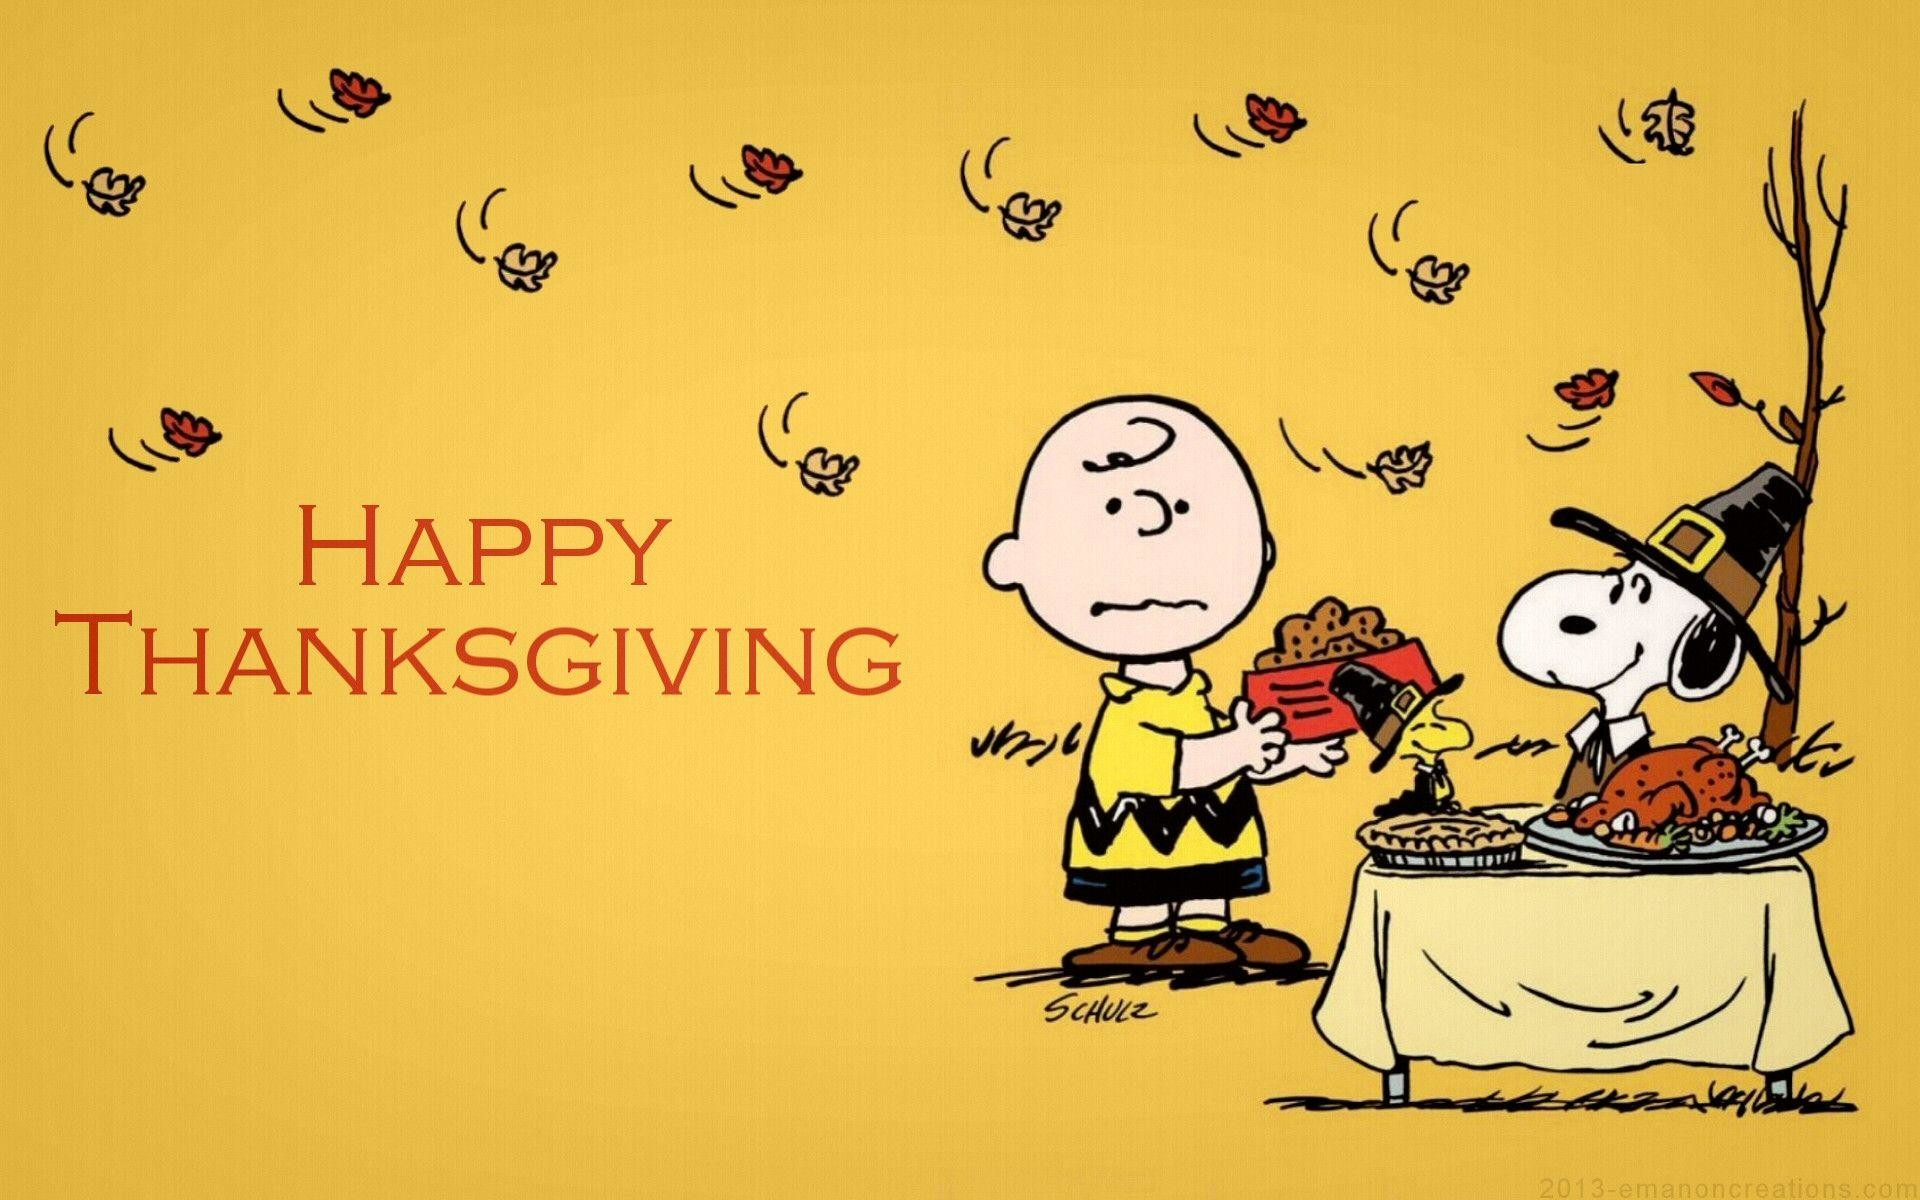 snoopy thanksgiving wallpaper (55+ images)